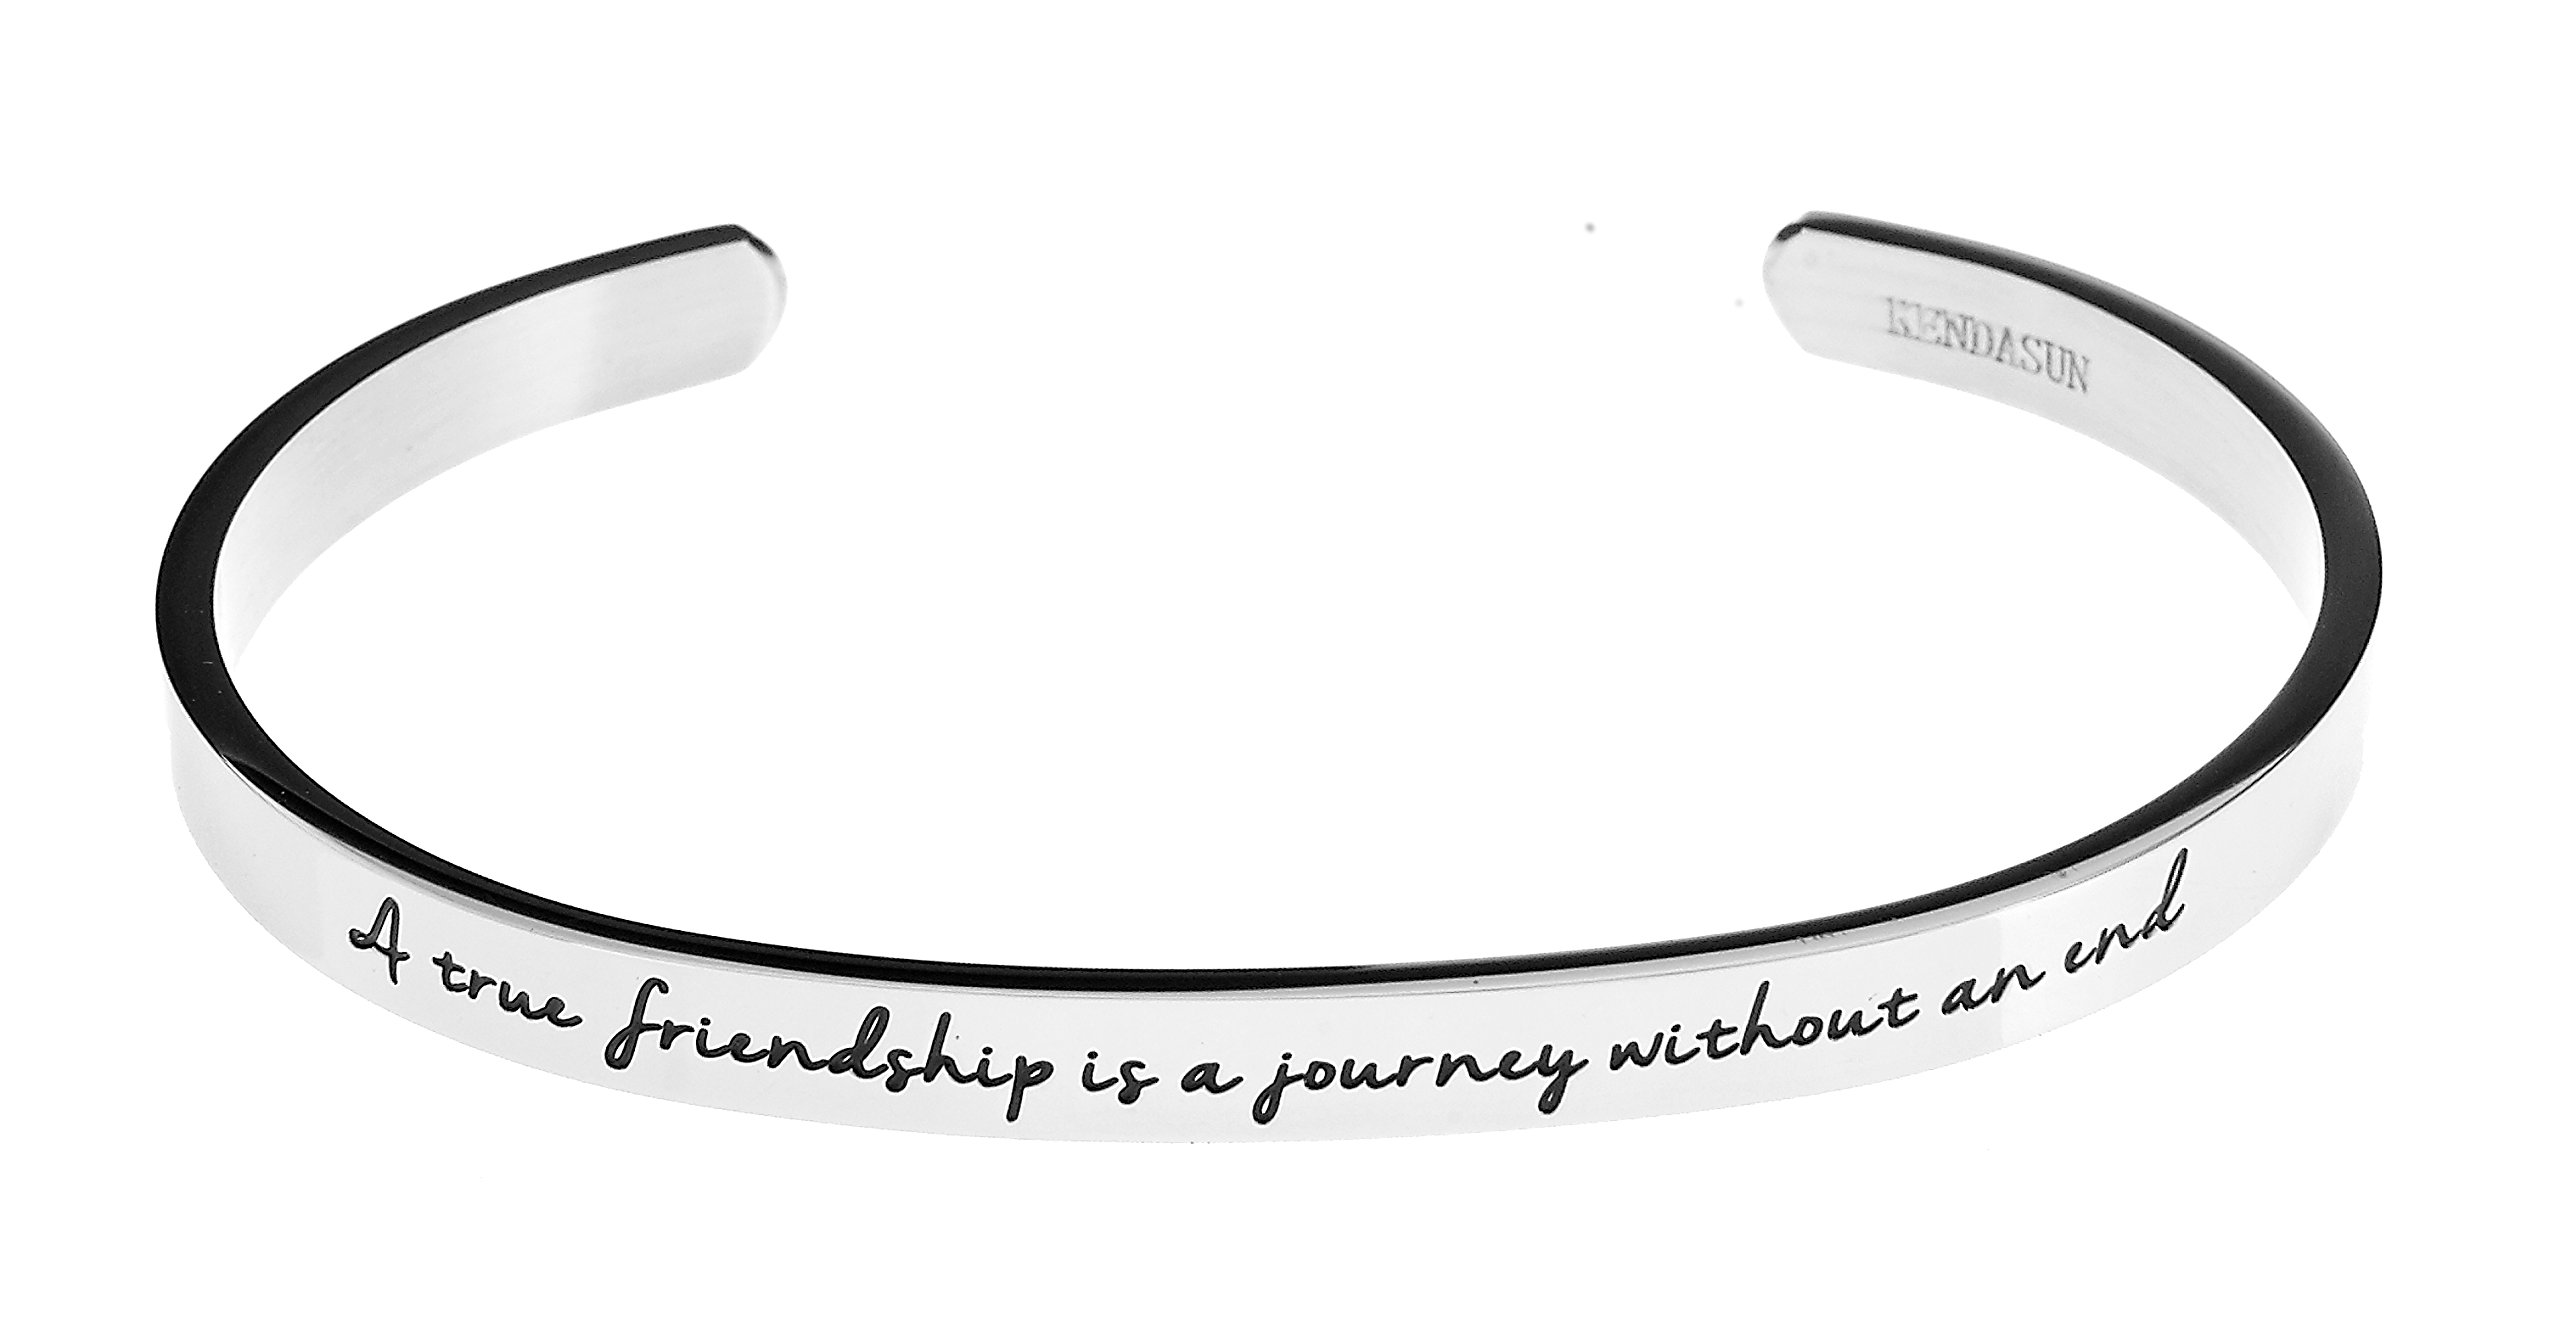 Zoey Jewelry A True Friendship is a Journey Without an end. Premium Stainless Steel Cuff Bangle Bracelet by Kendasun Jewelry